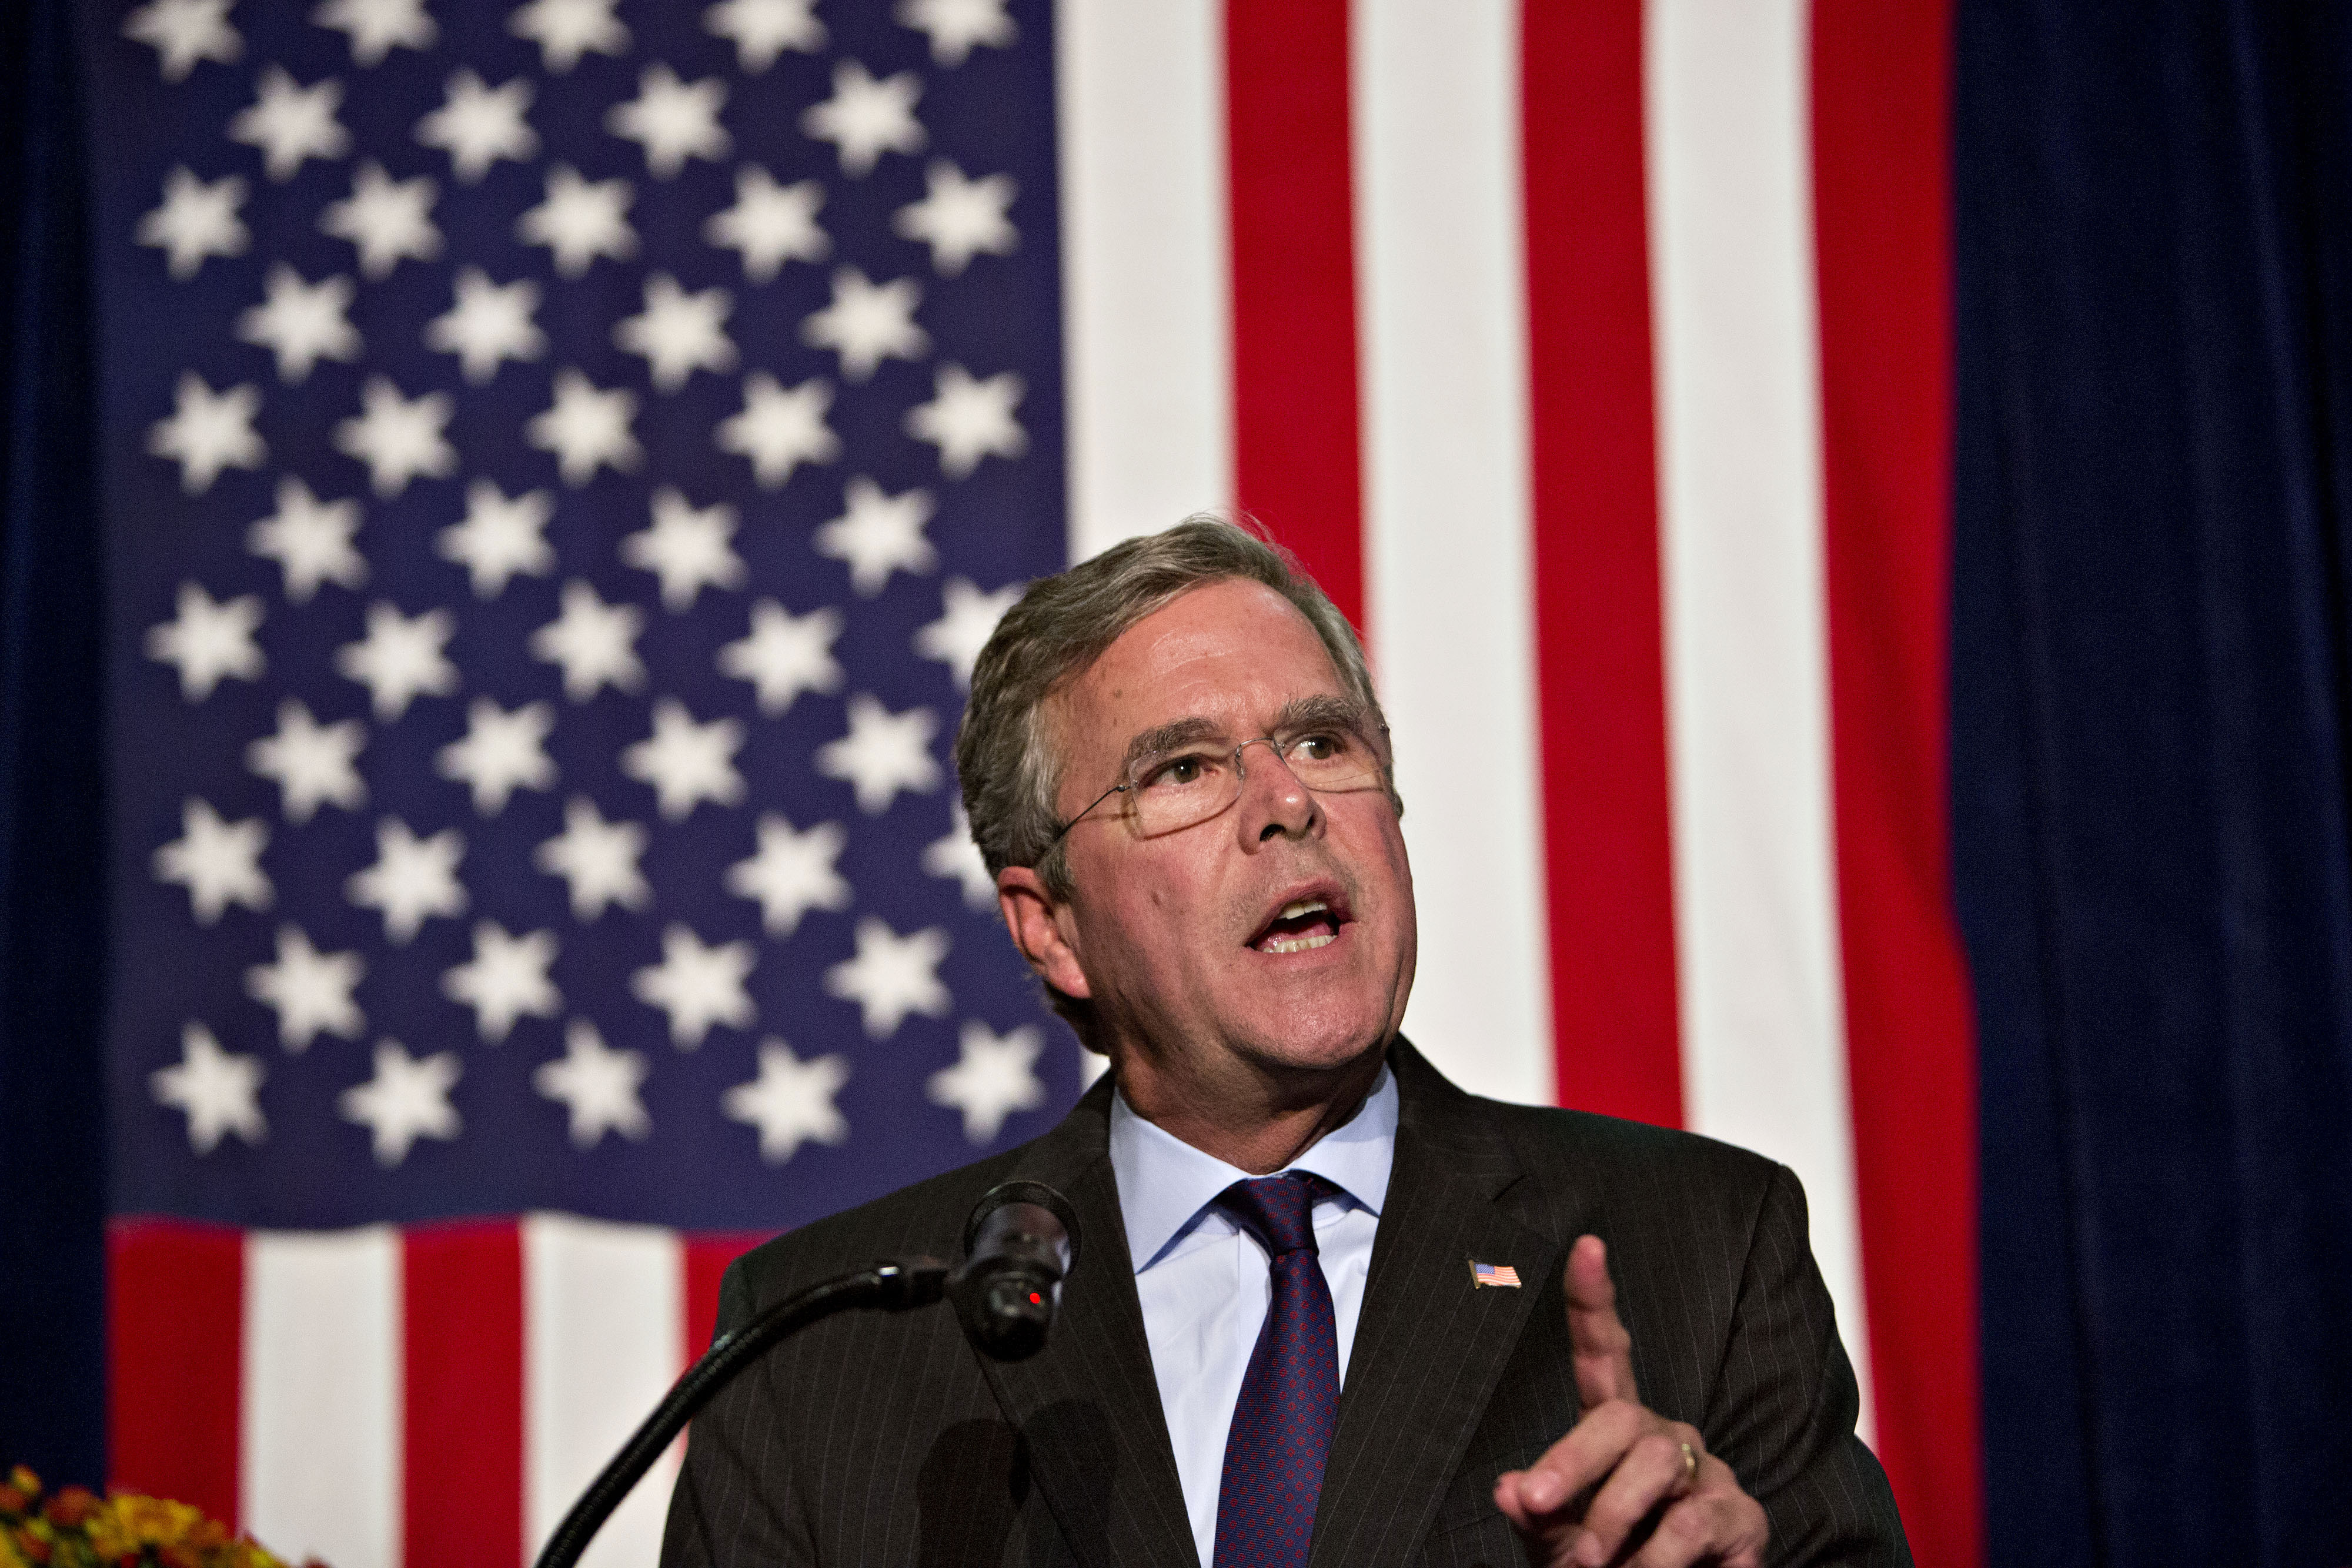 Jeb Bush, former Governor of Florida and 2016 Republican presidential candidate, speaks during the Scott County Republican party Ronald Reagan Dinner in Davenport, Iowa, U.S., on Oct. 6, 2015.